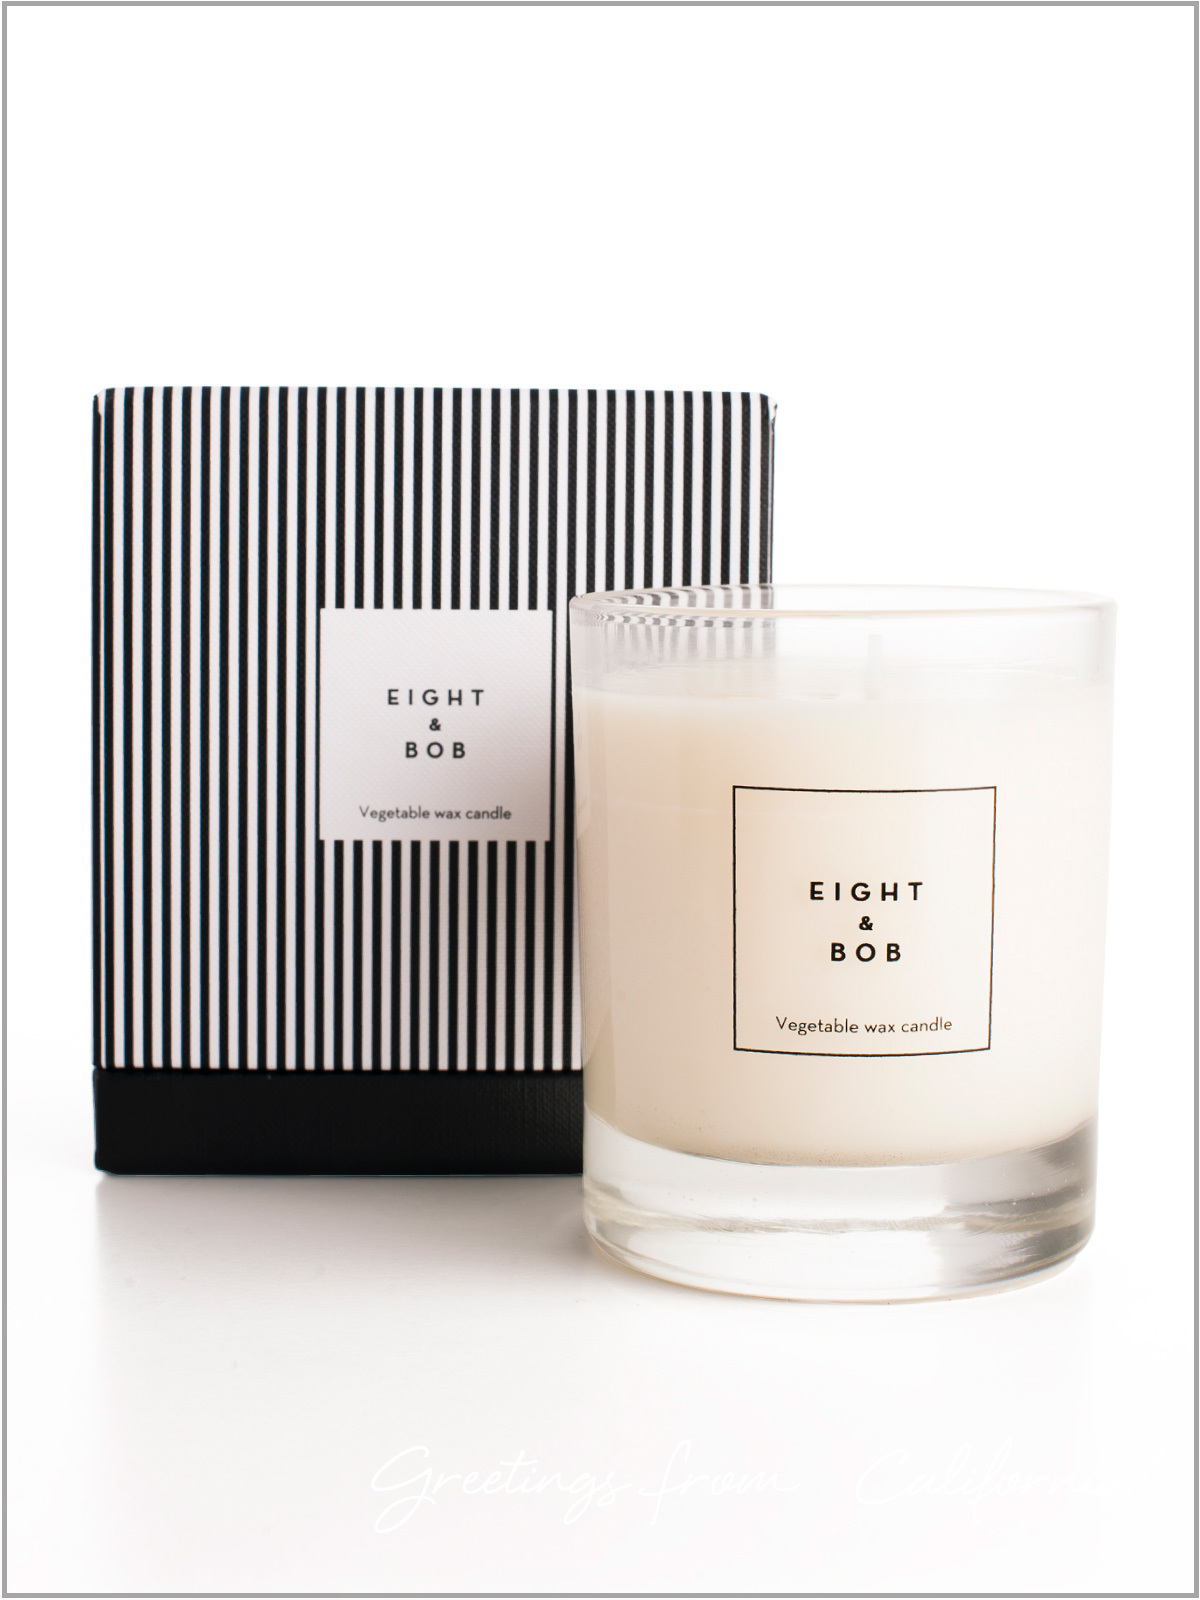 frederickandsophie-lifestyle-grooming-eaudetoilette-eight-and-bob-original-perfumed-candle